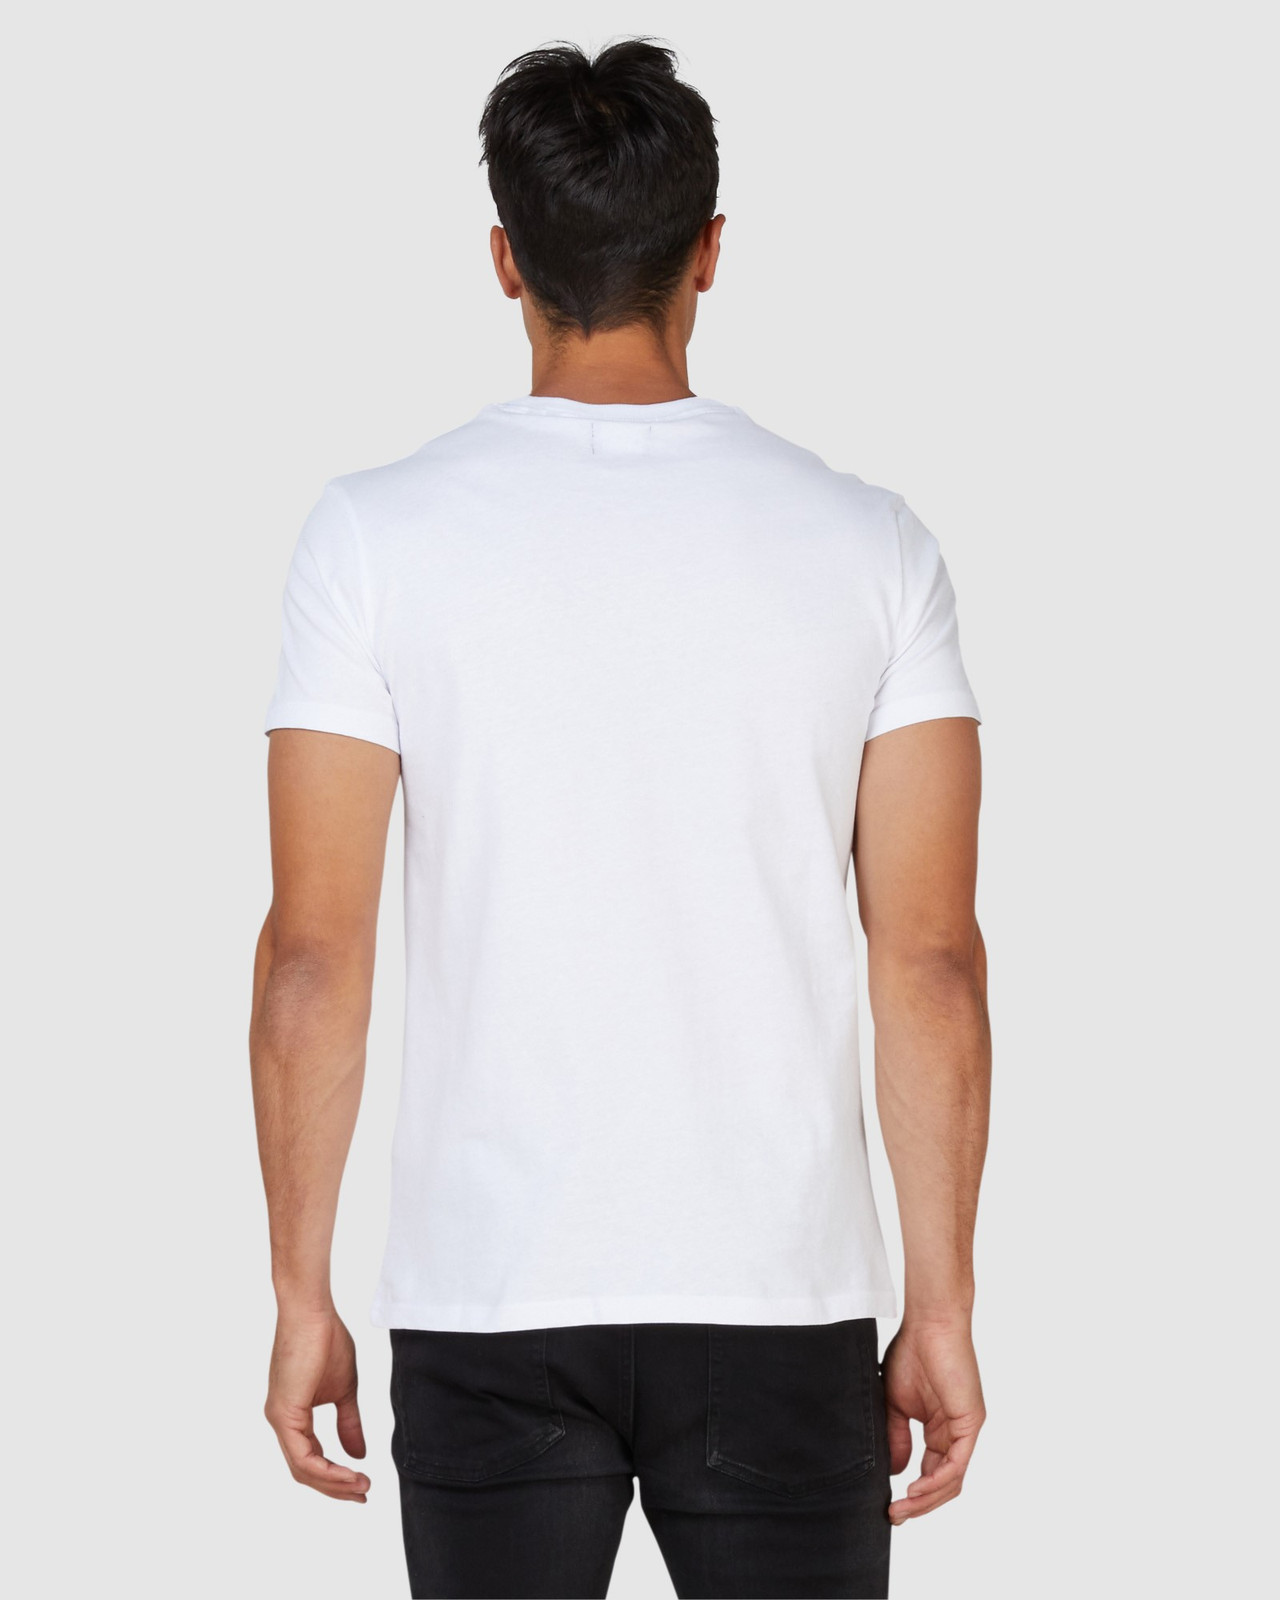 Superdry Mens SDRY PANEL TEE White Printed T Shirts 3